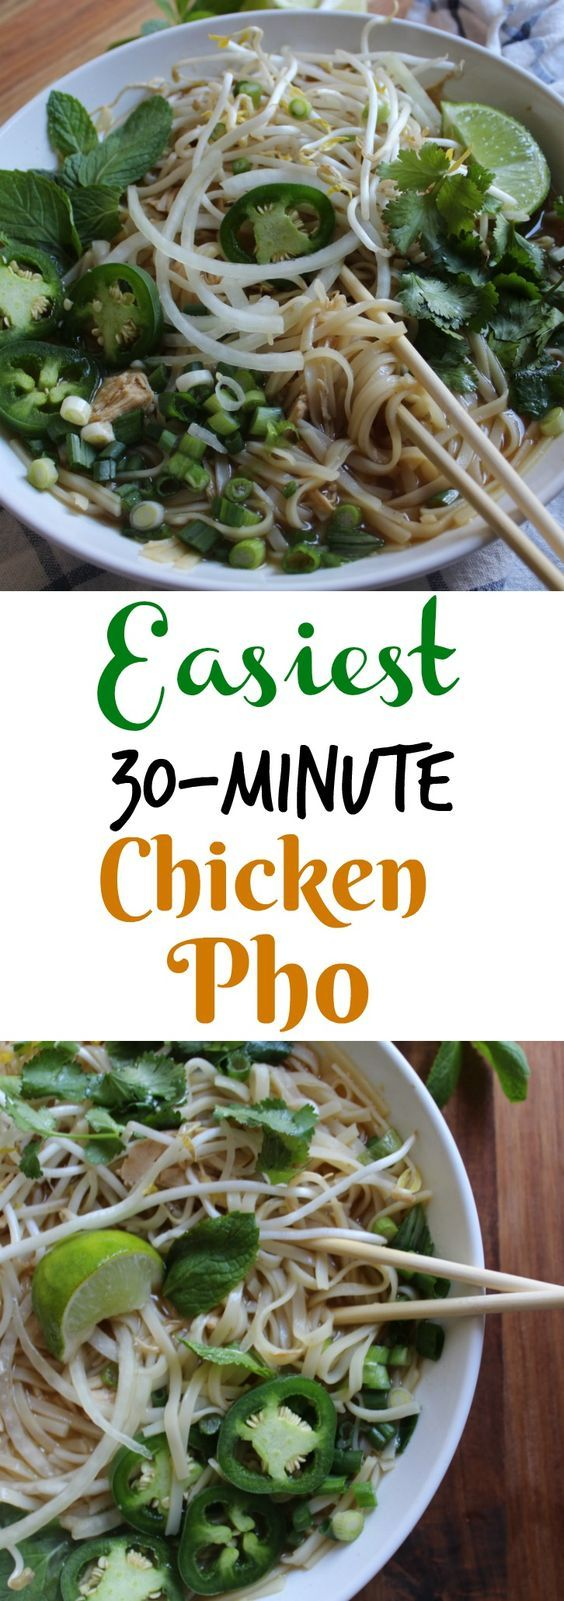 This easy 30 minute Chicken Pho soup is a delicious recipe that won't require hours in the kitchen. Inspired by the Vietnamese traditional dish, it  has the same great flavors with the optional sides to really enhance the soup.